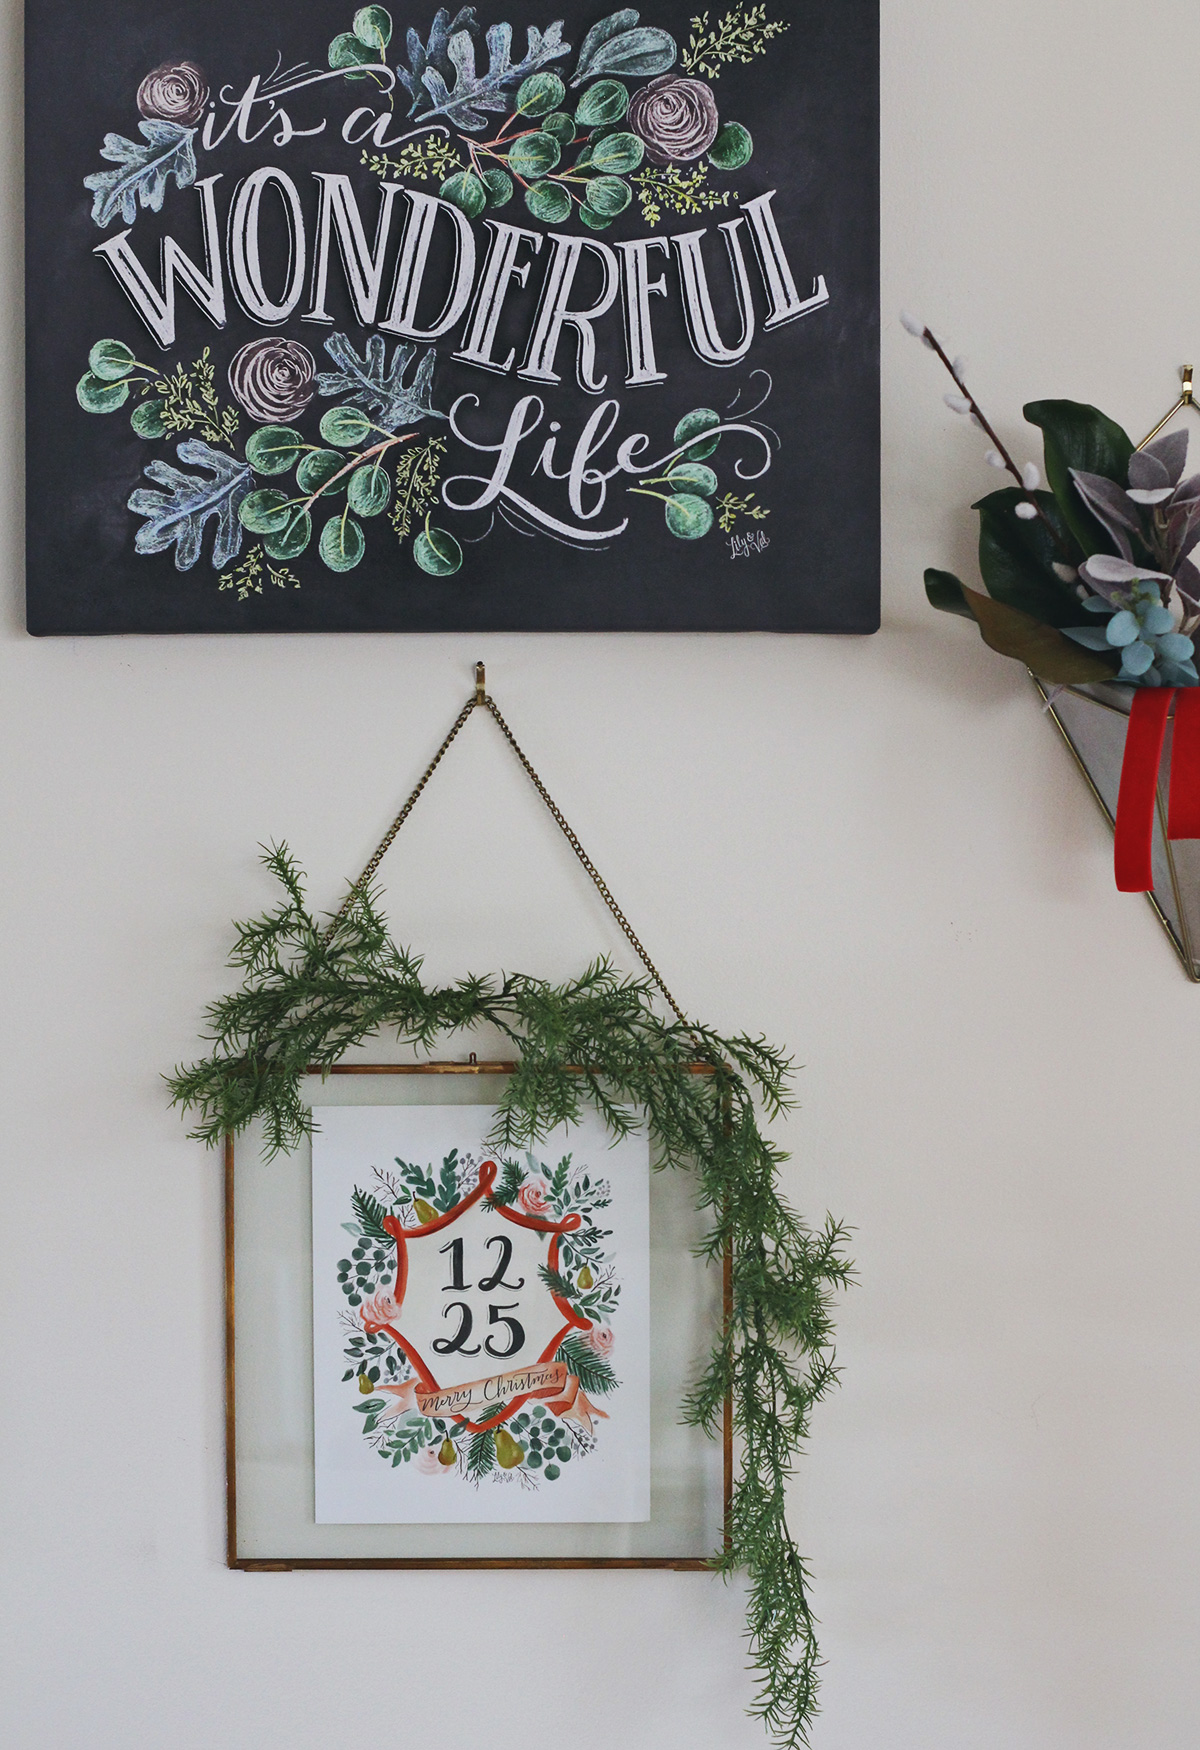 How To Use A Hearth Amp Hand Brass Frame From Target To Make This Holiday Wall Hanging Lily